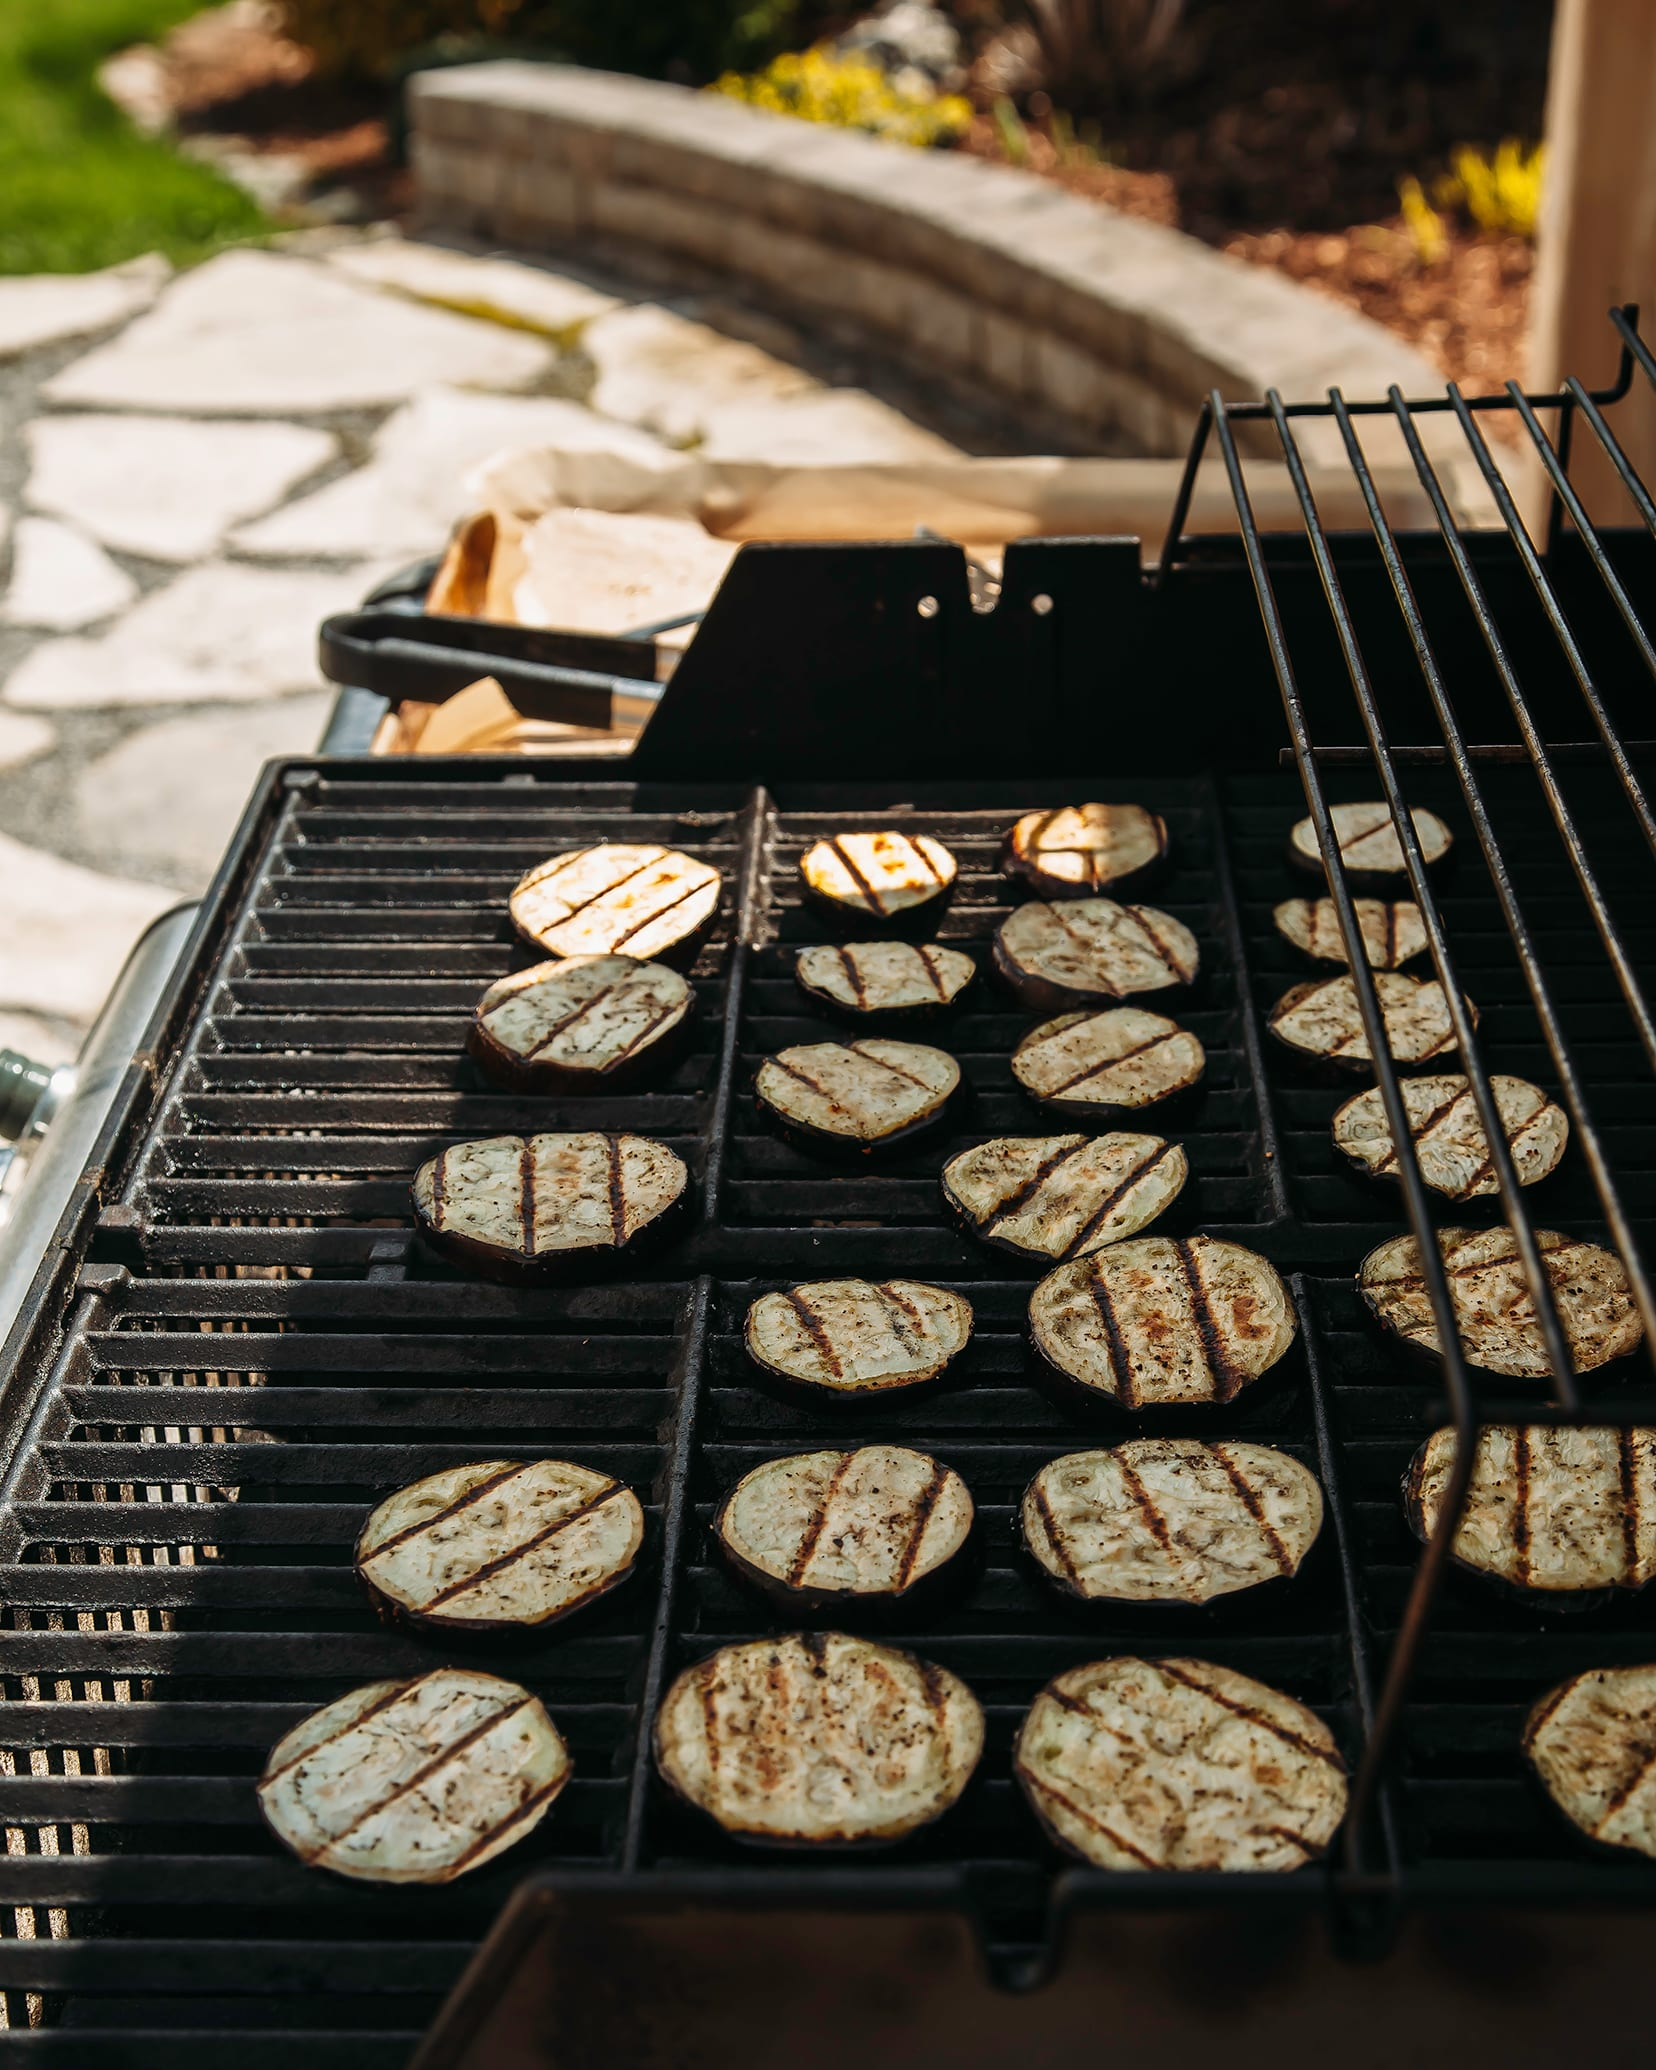 Side angle photograph of eggplant slices on an outdoor grill with a garden in the background.